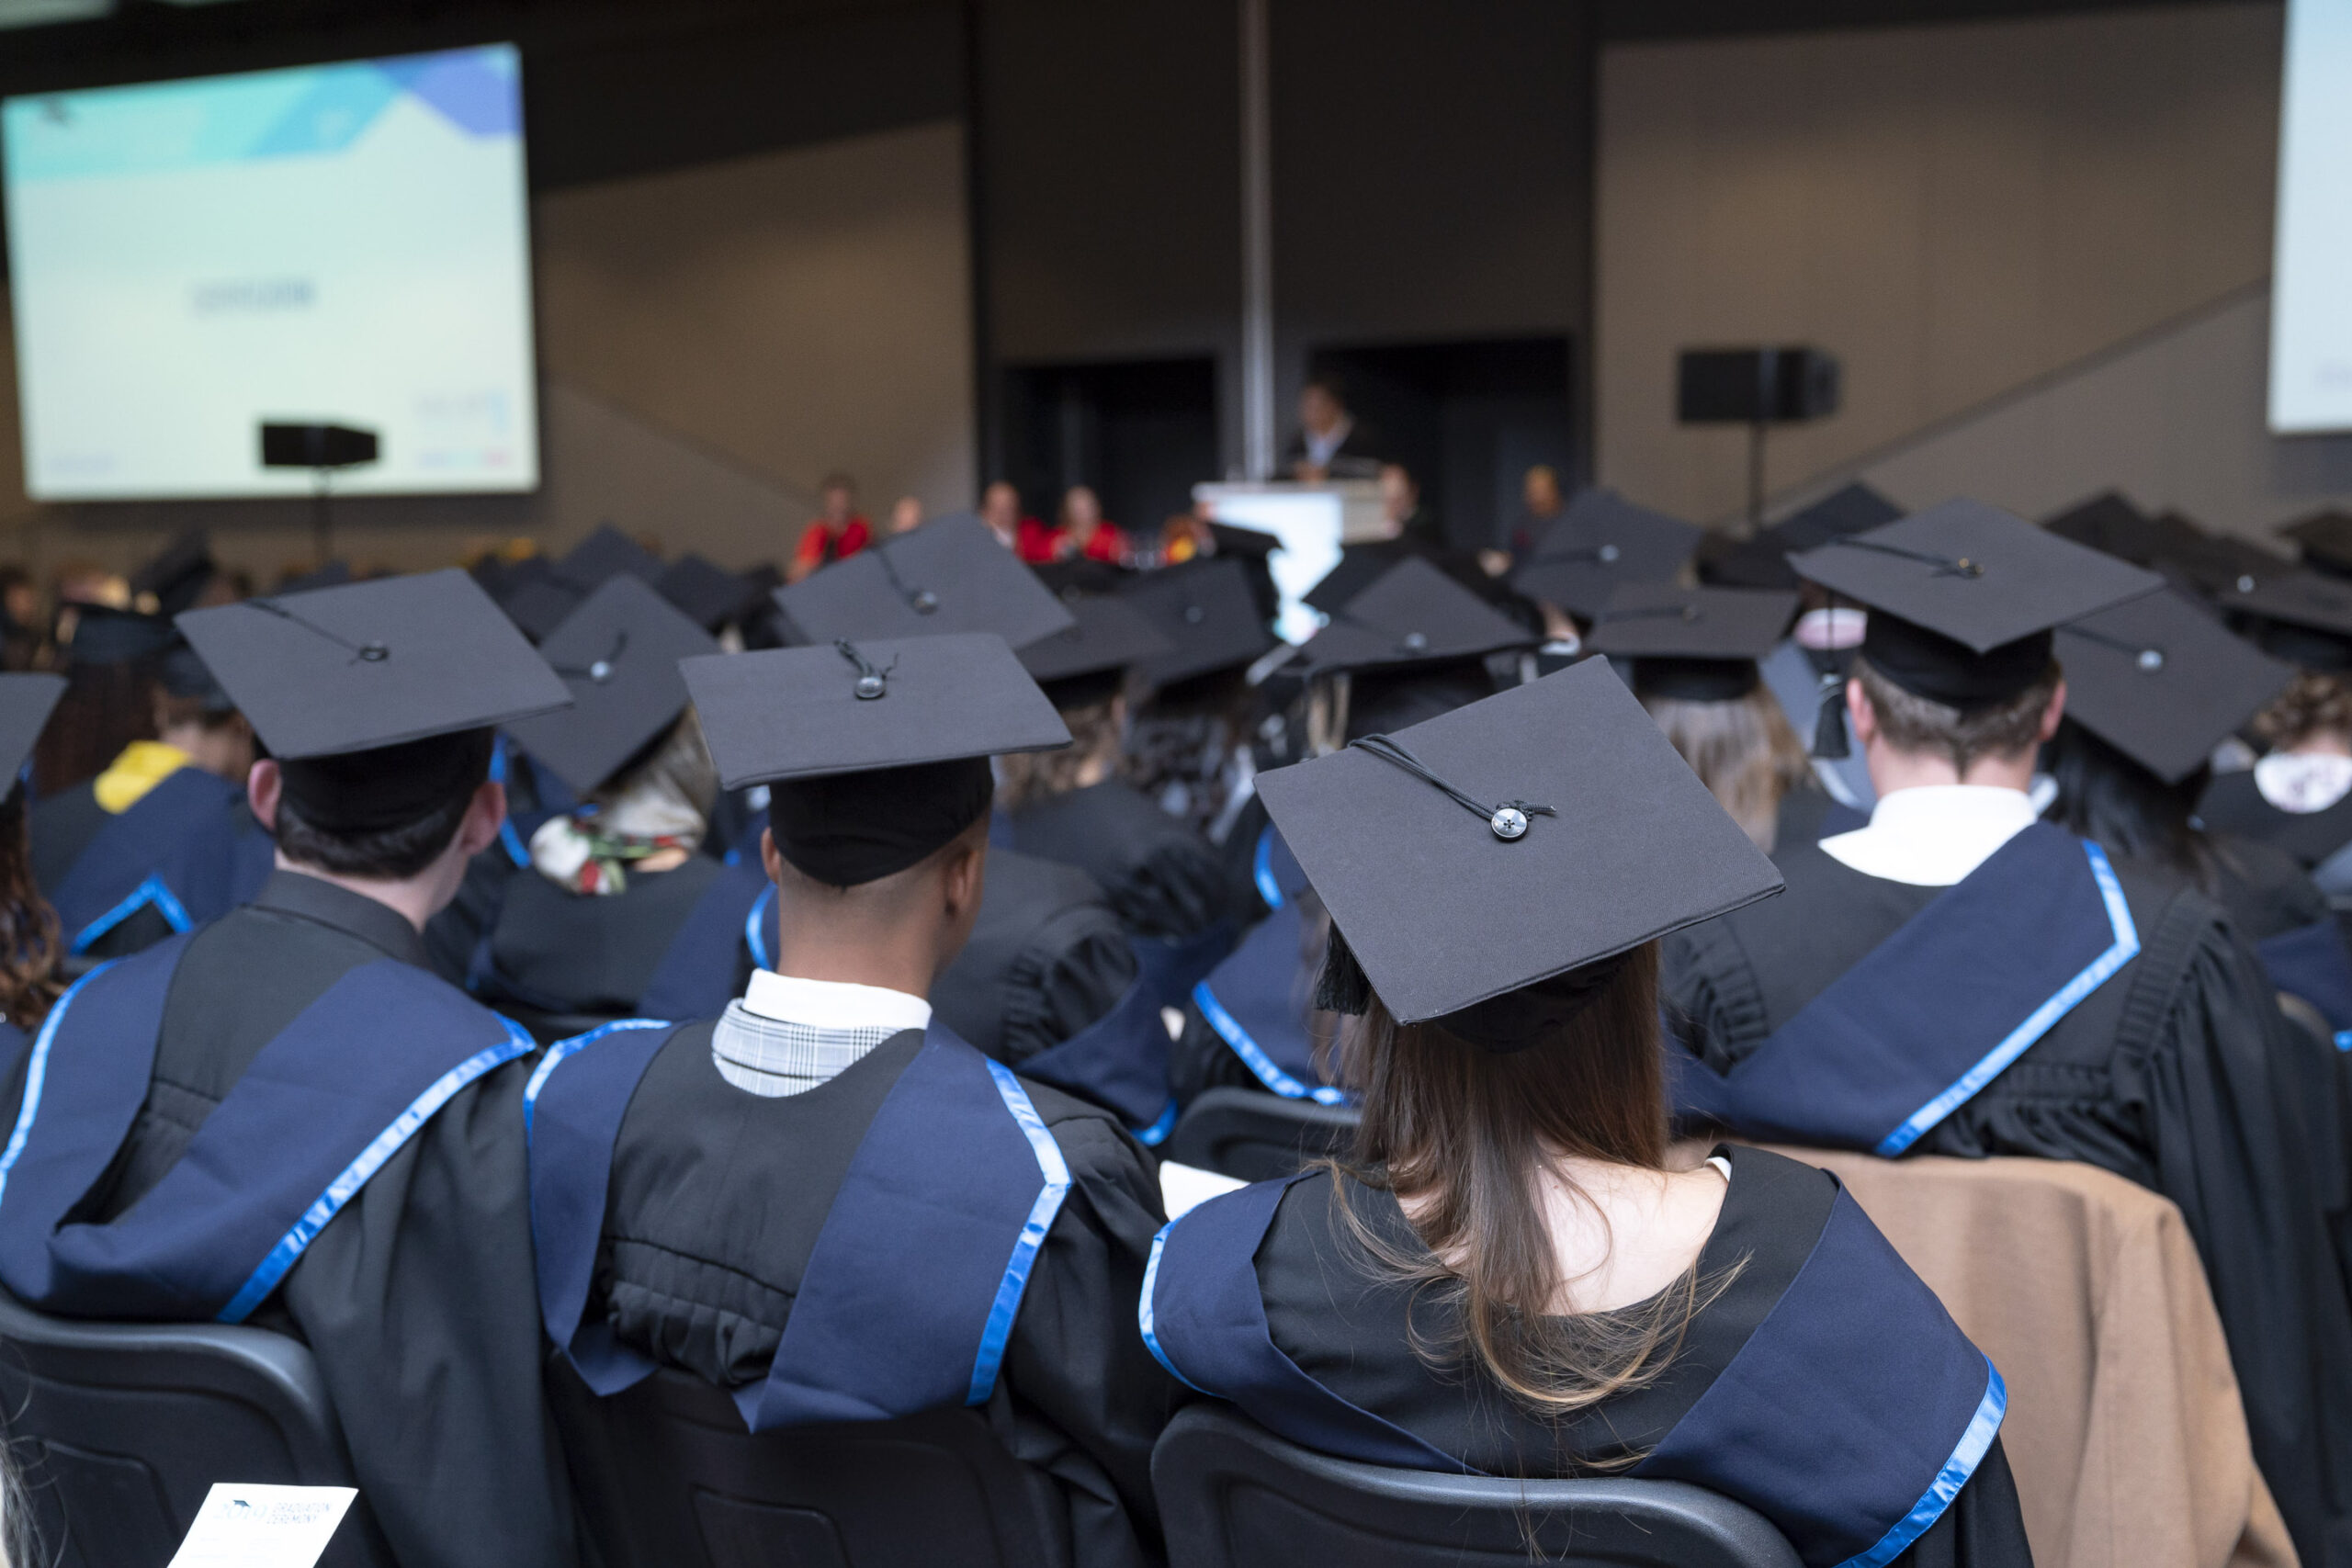 SACAP is empowering graduates to make a difference in society